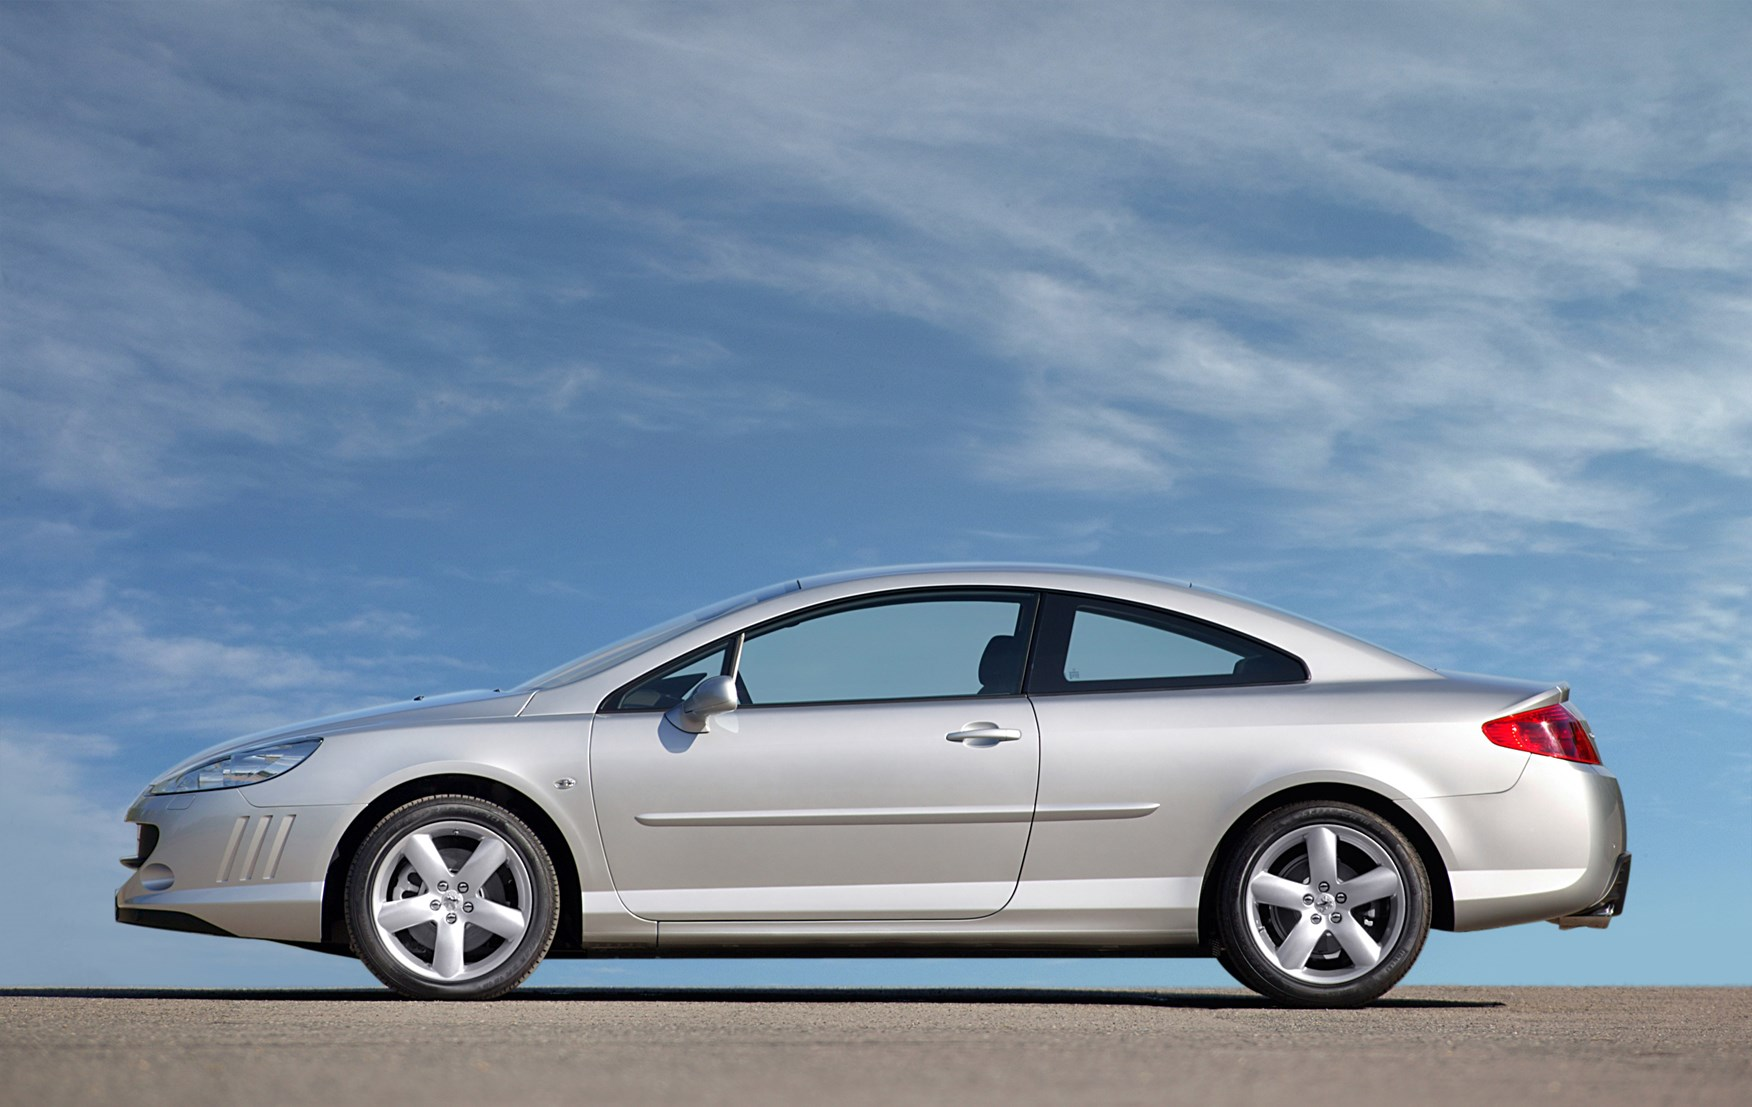 Used Mazda Rx8 >> Used Peugeot 407 Coupe (2006 - 2010) Review | Parkers